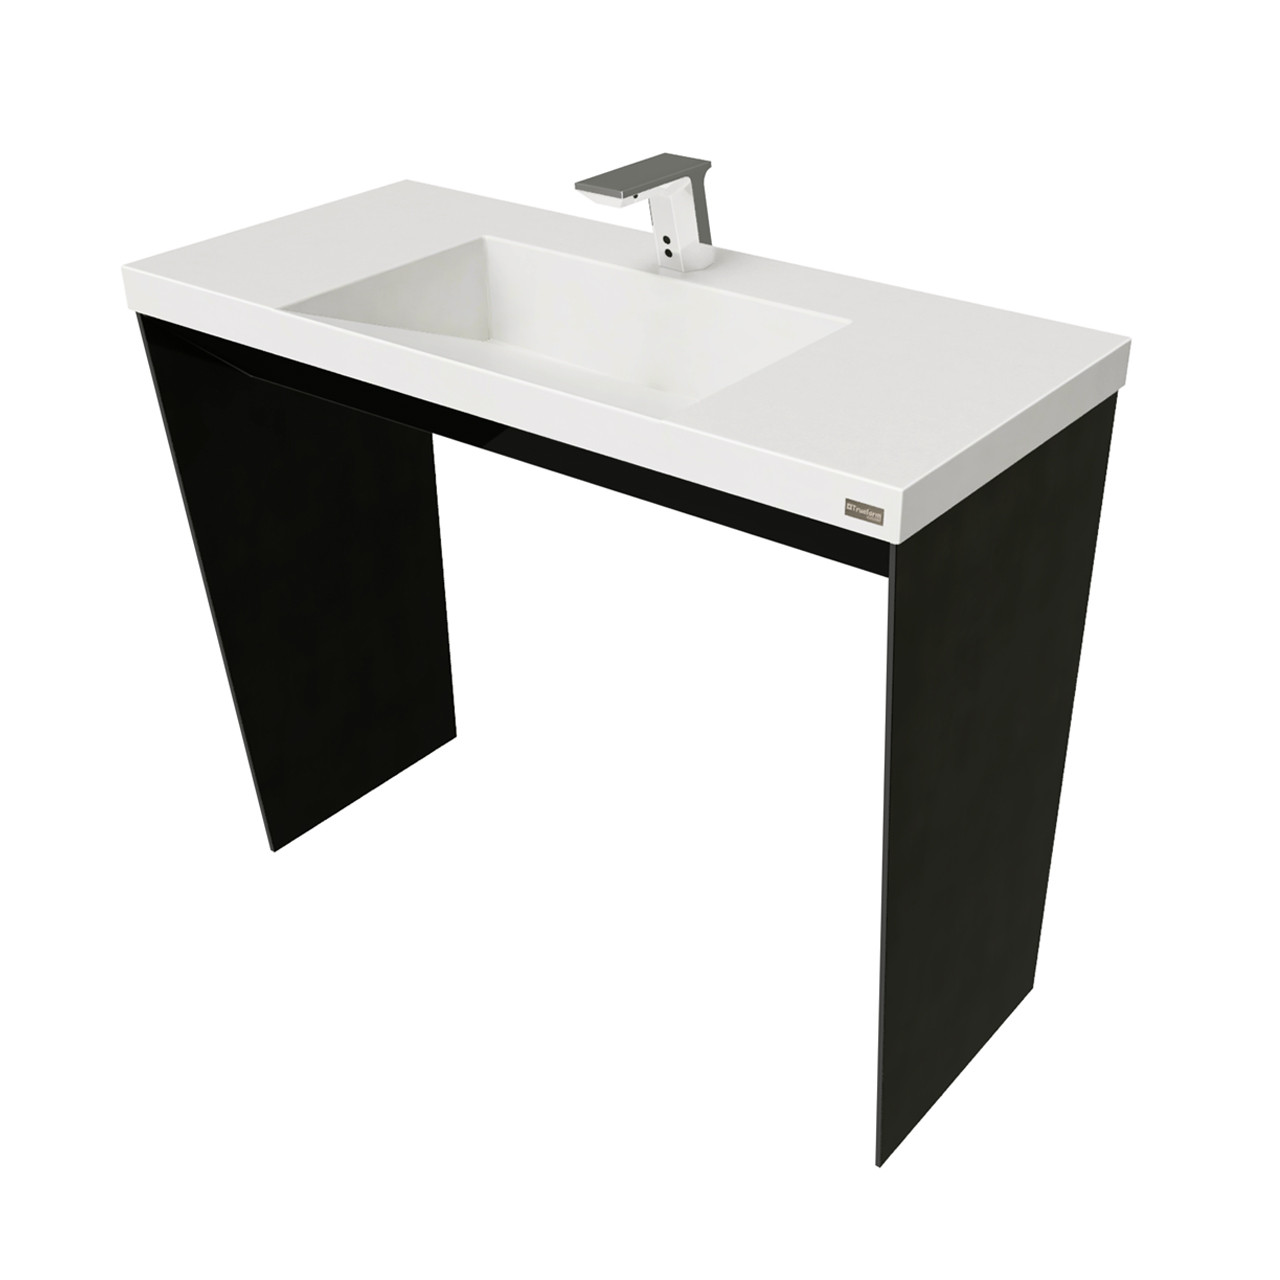 "ADA 40"" Contempo Bathroom Vanity Sink - Trueform Concrete"